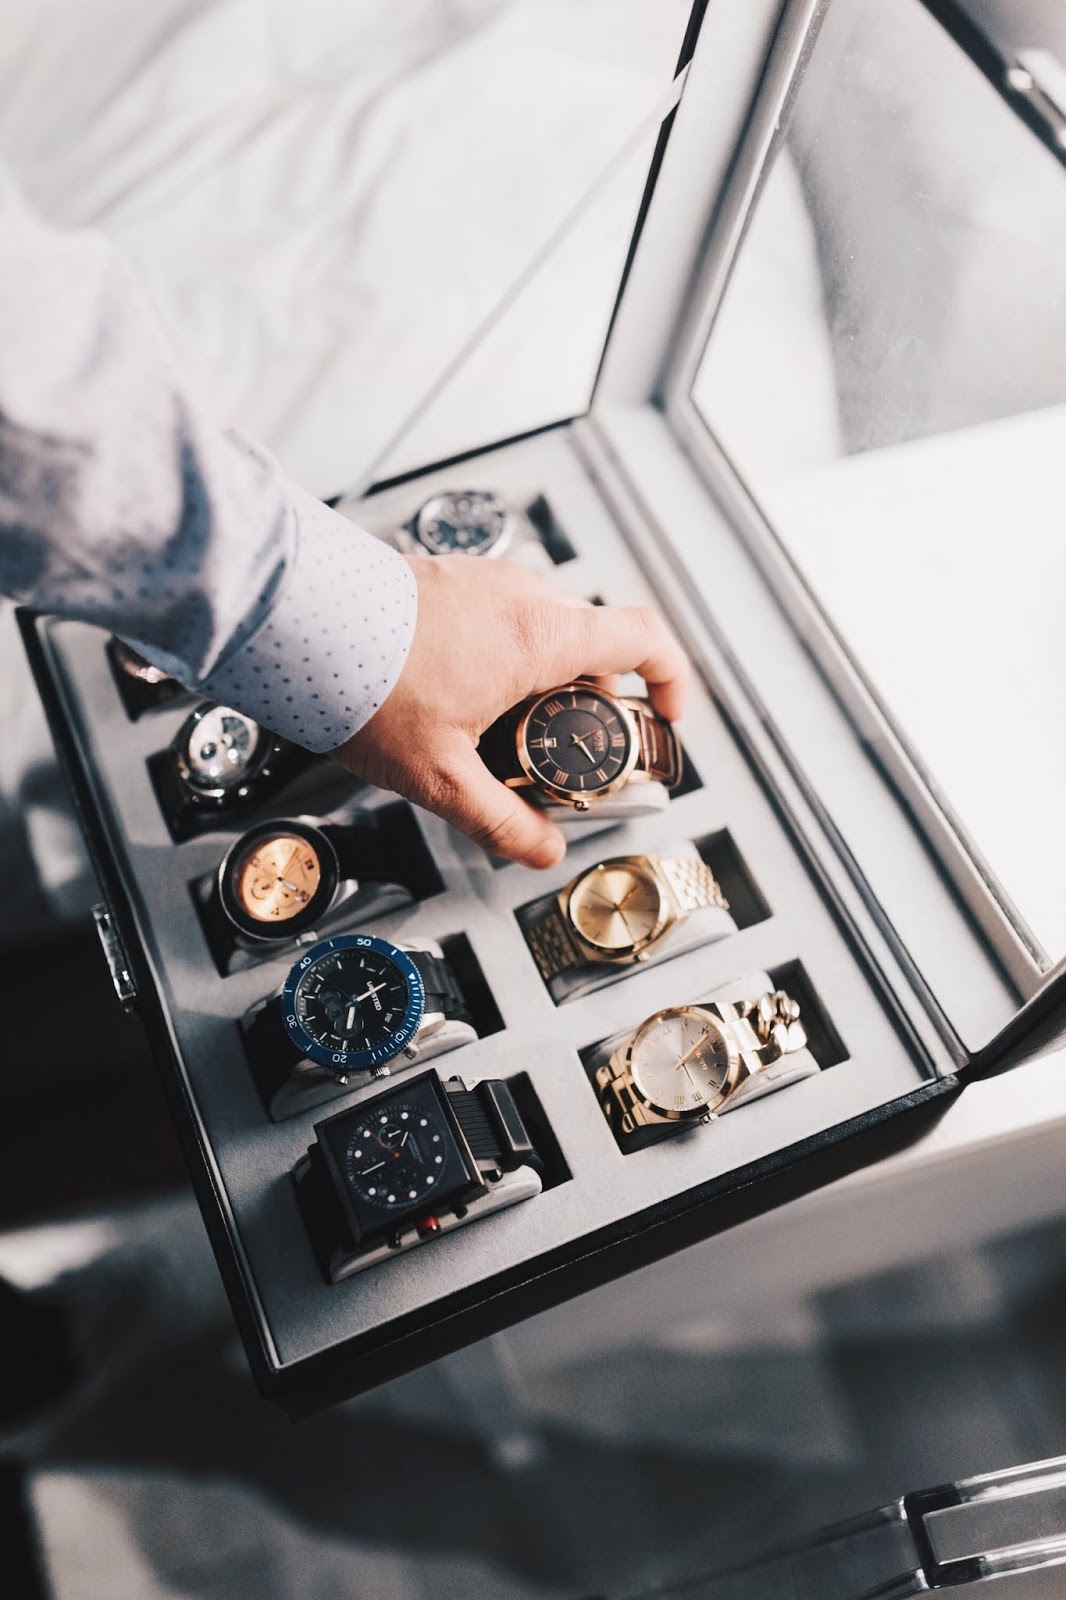 How To Choose Citizen Watches That Will Give A Classy And Smart Look